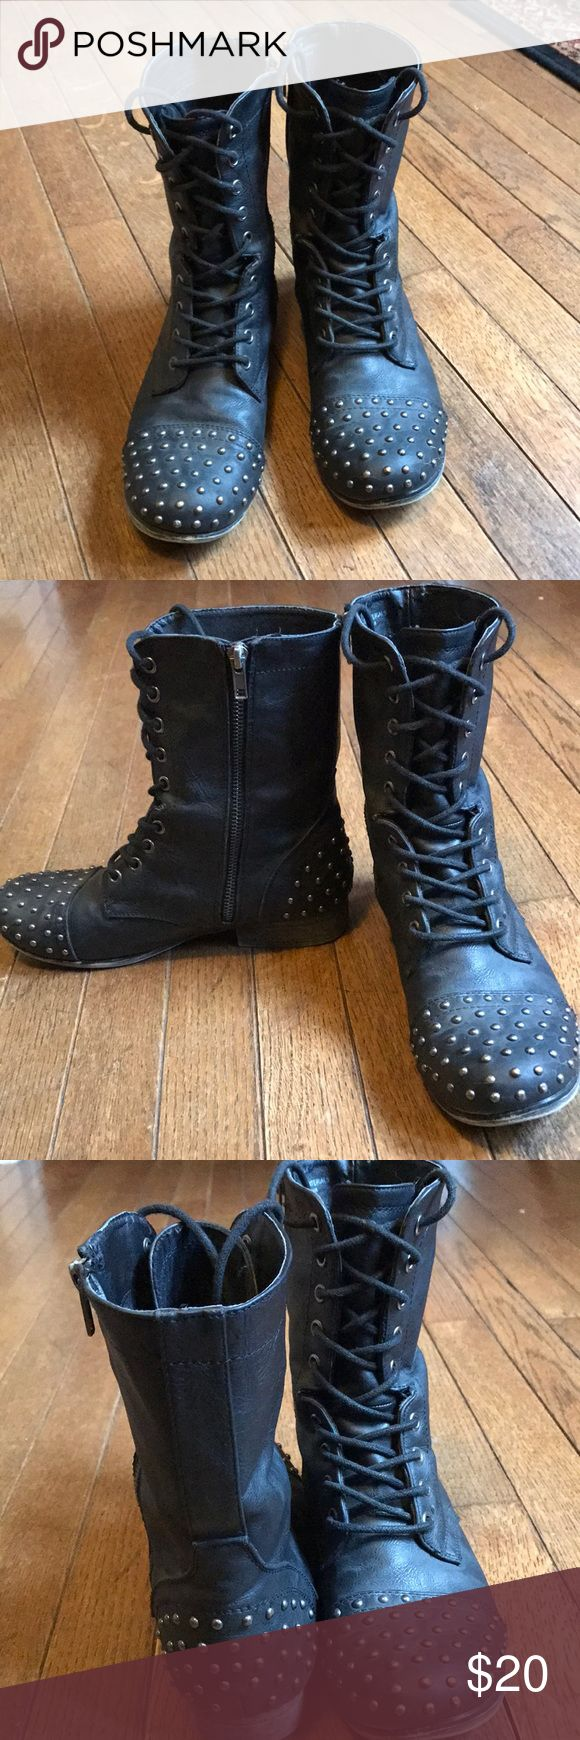 Madden Girl studded combat boots Size 8 Madden Girl combat boots Madden Girl Shoes Combat & Moto Boots